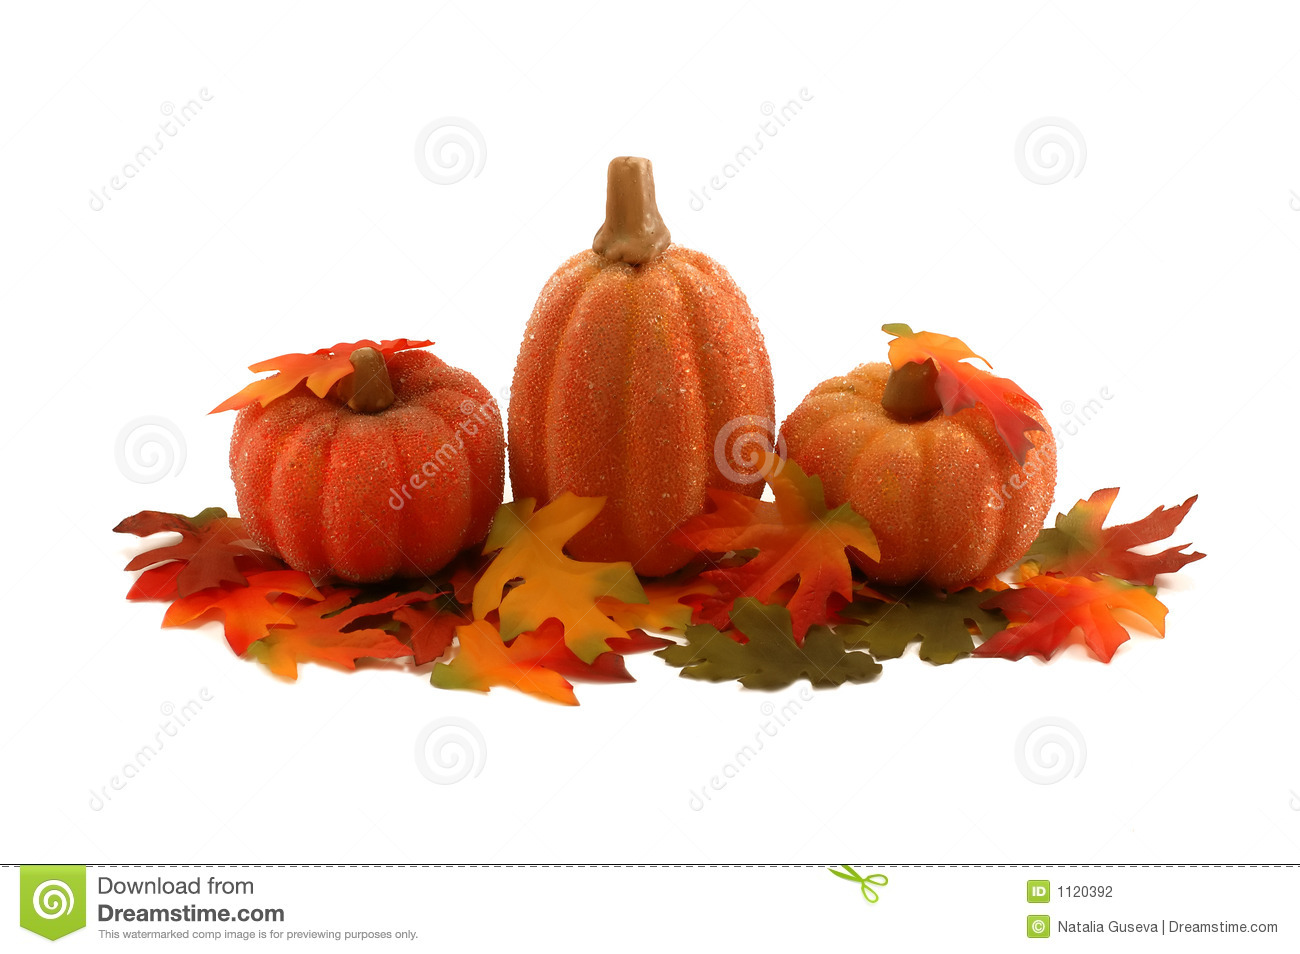 Pumpkins and leafs - Thanksgiving decoration